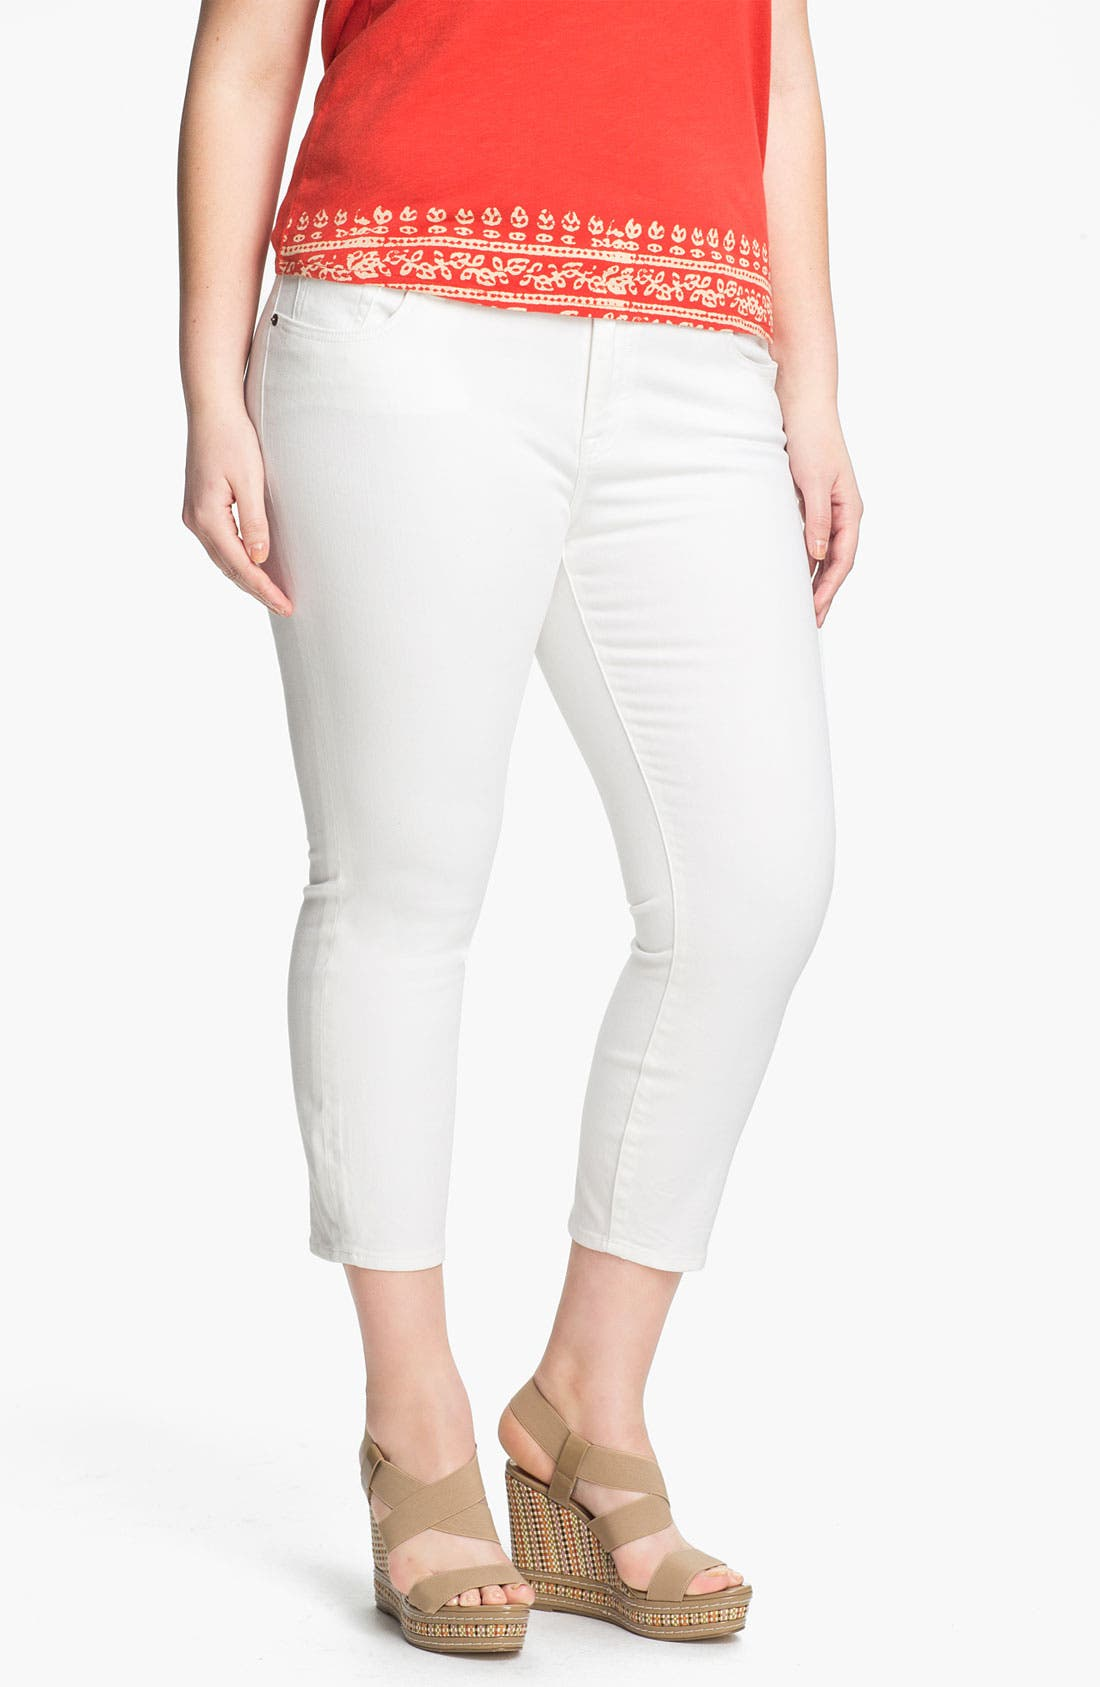 Alternate Image 1 Selected - Lucky Brand 'Ginger' Skinny Capri Jeans (Plus)